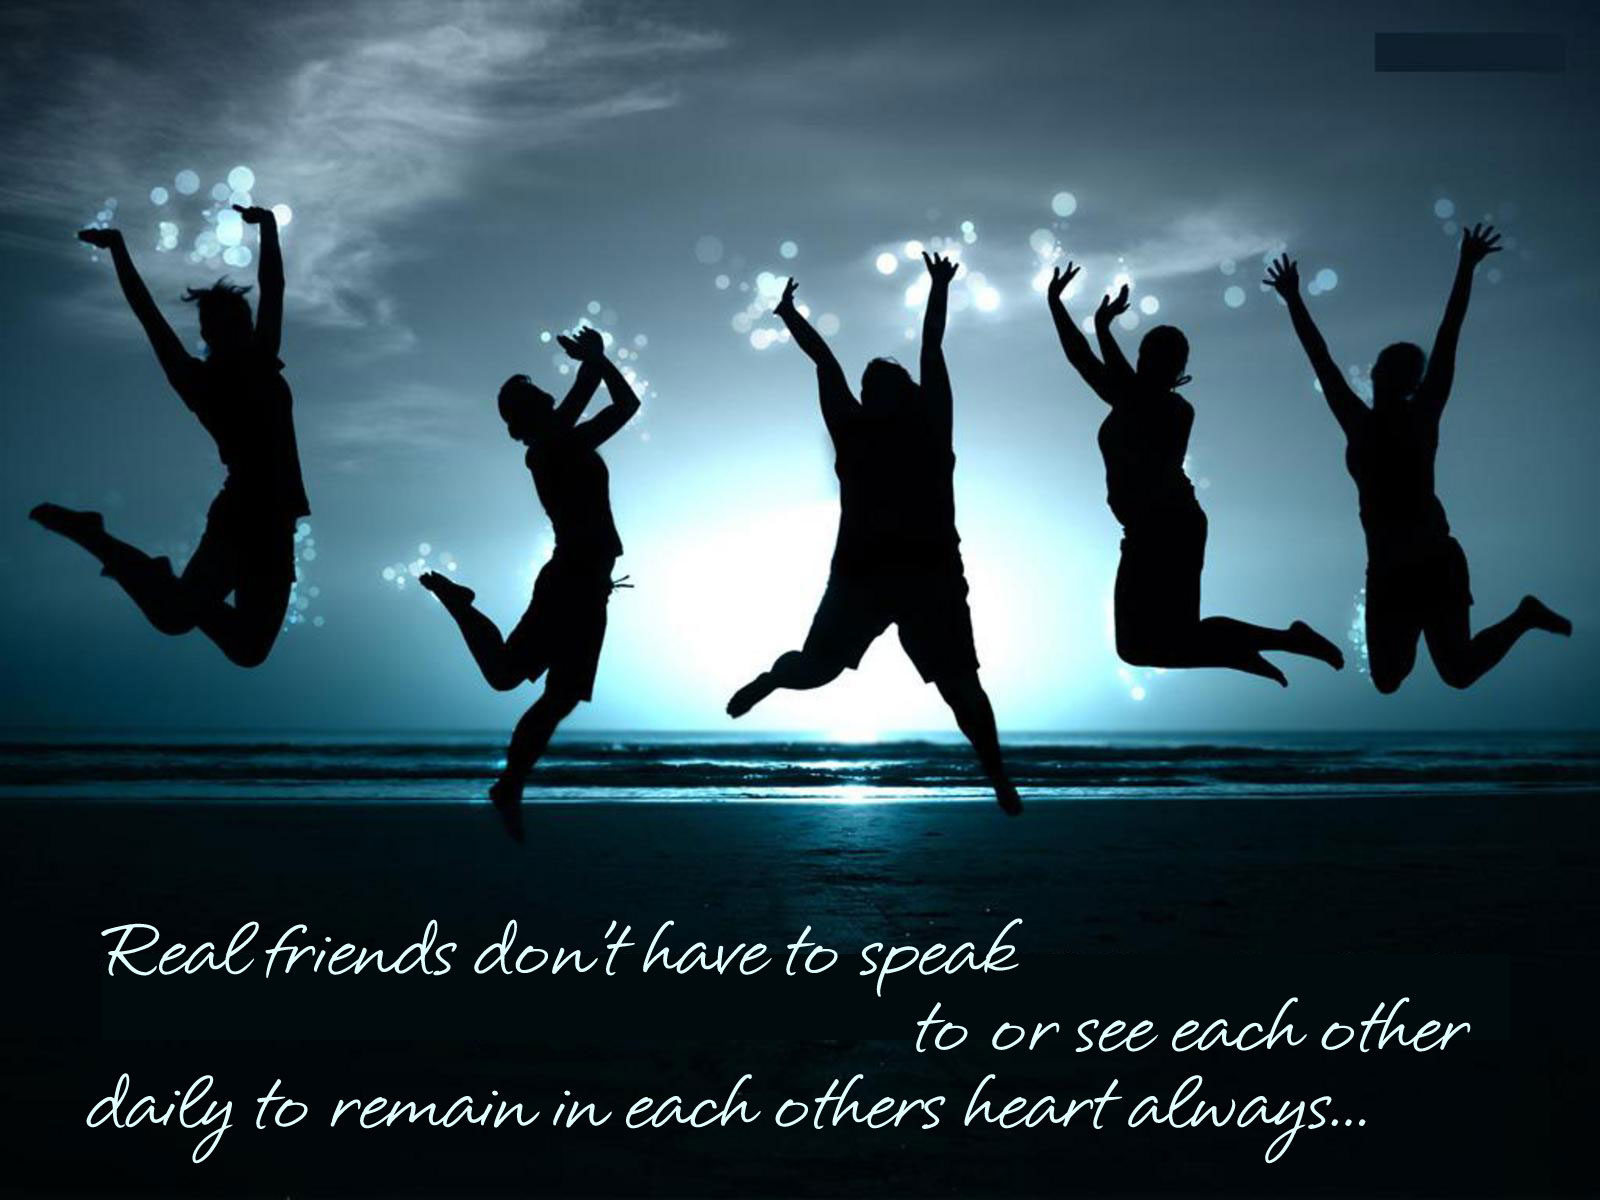 To my close friends,